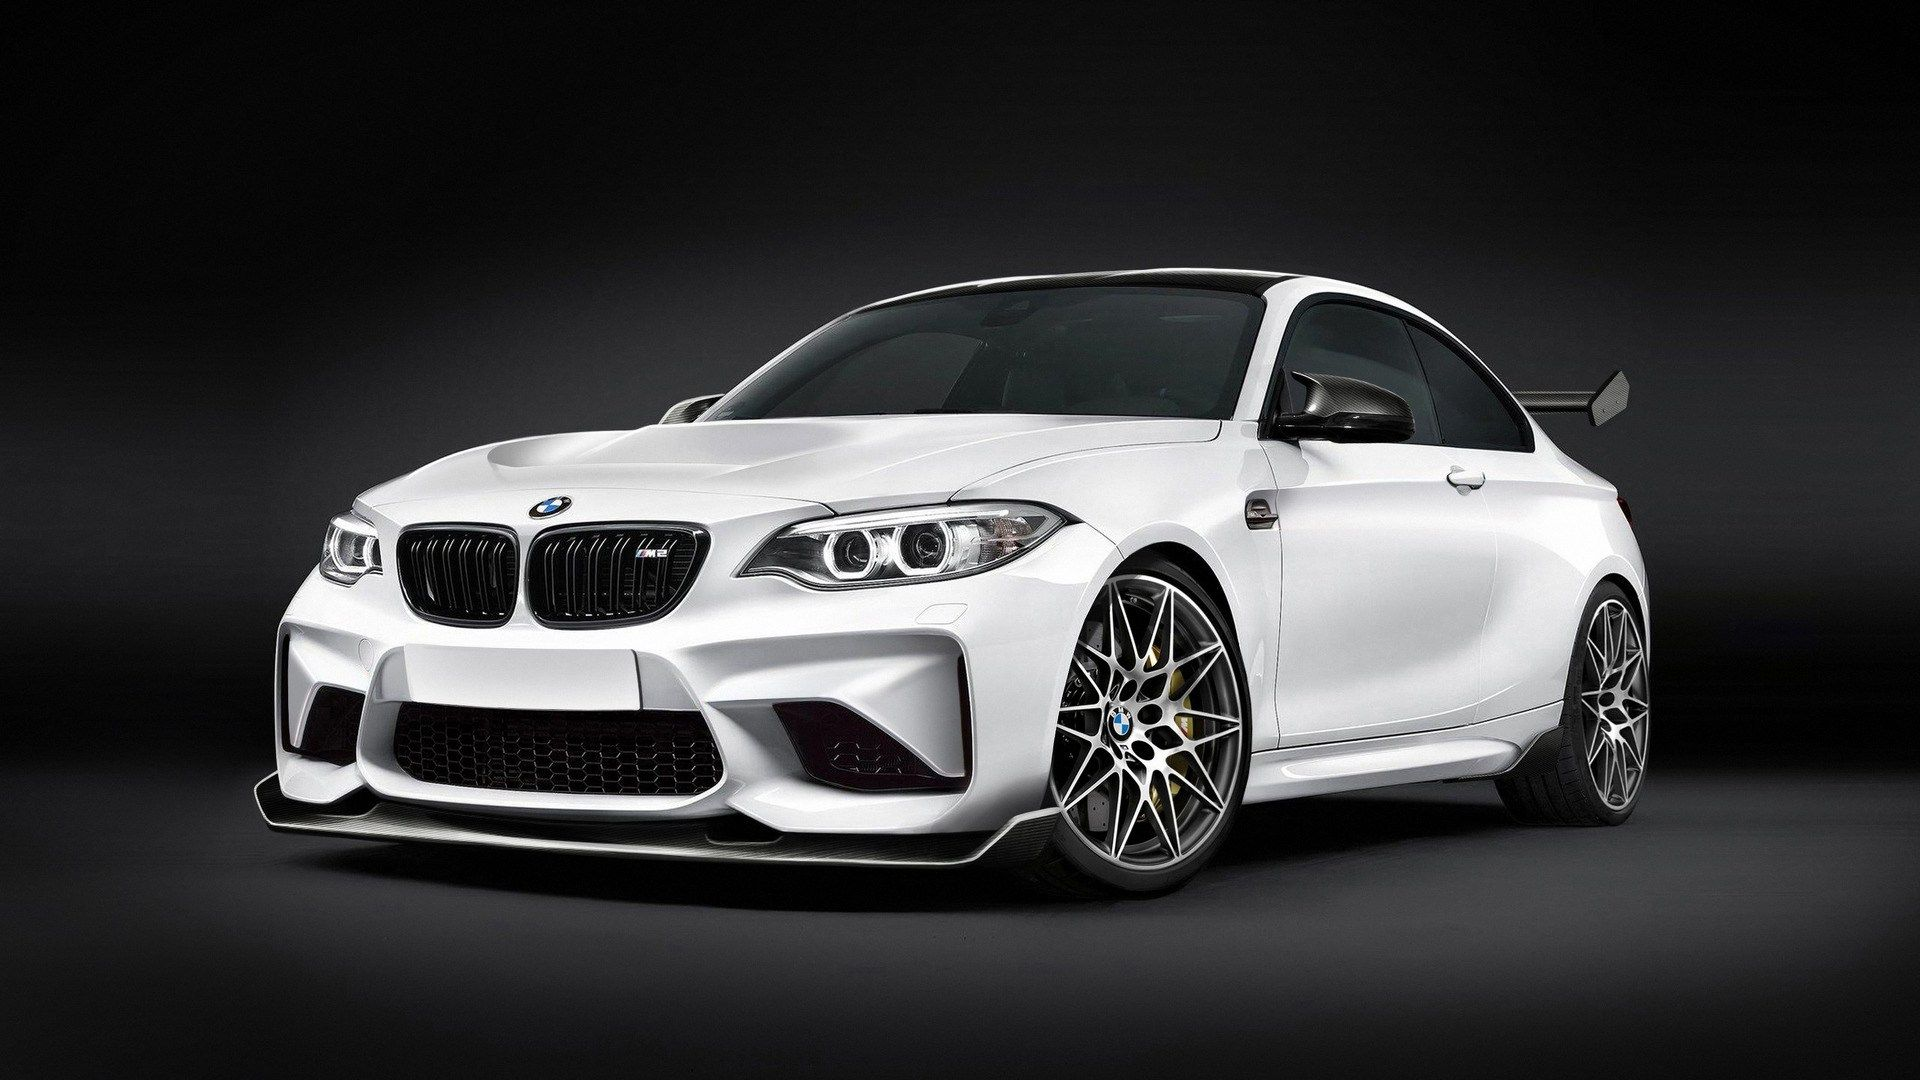 2019 Bmw M2 Review Price And Release Date Rumor Bmw White Bmw